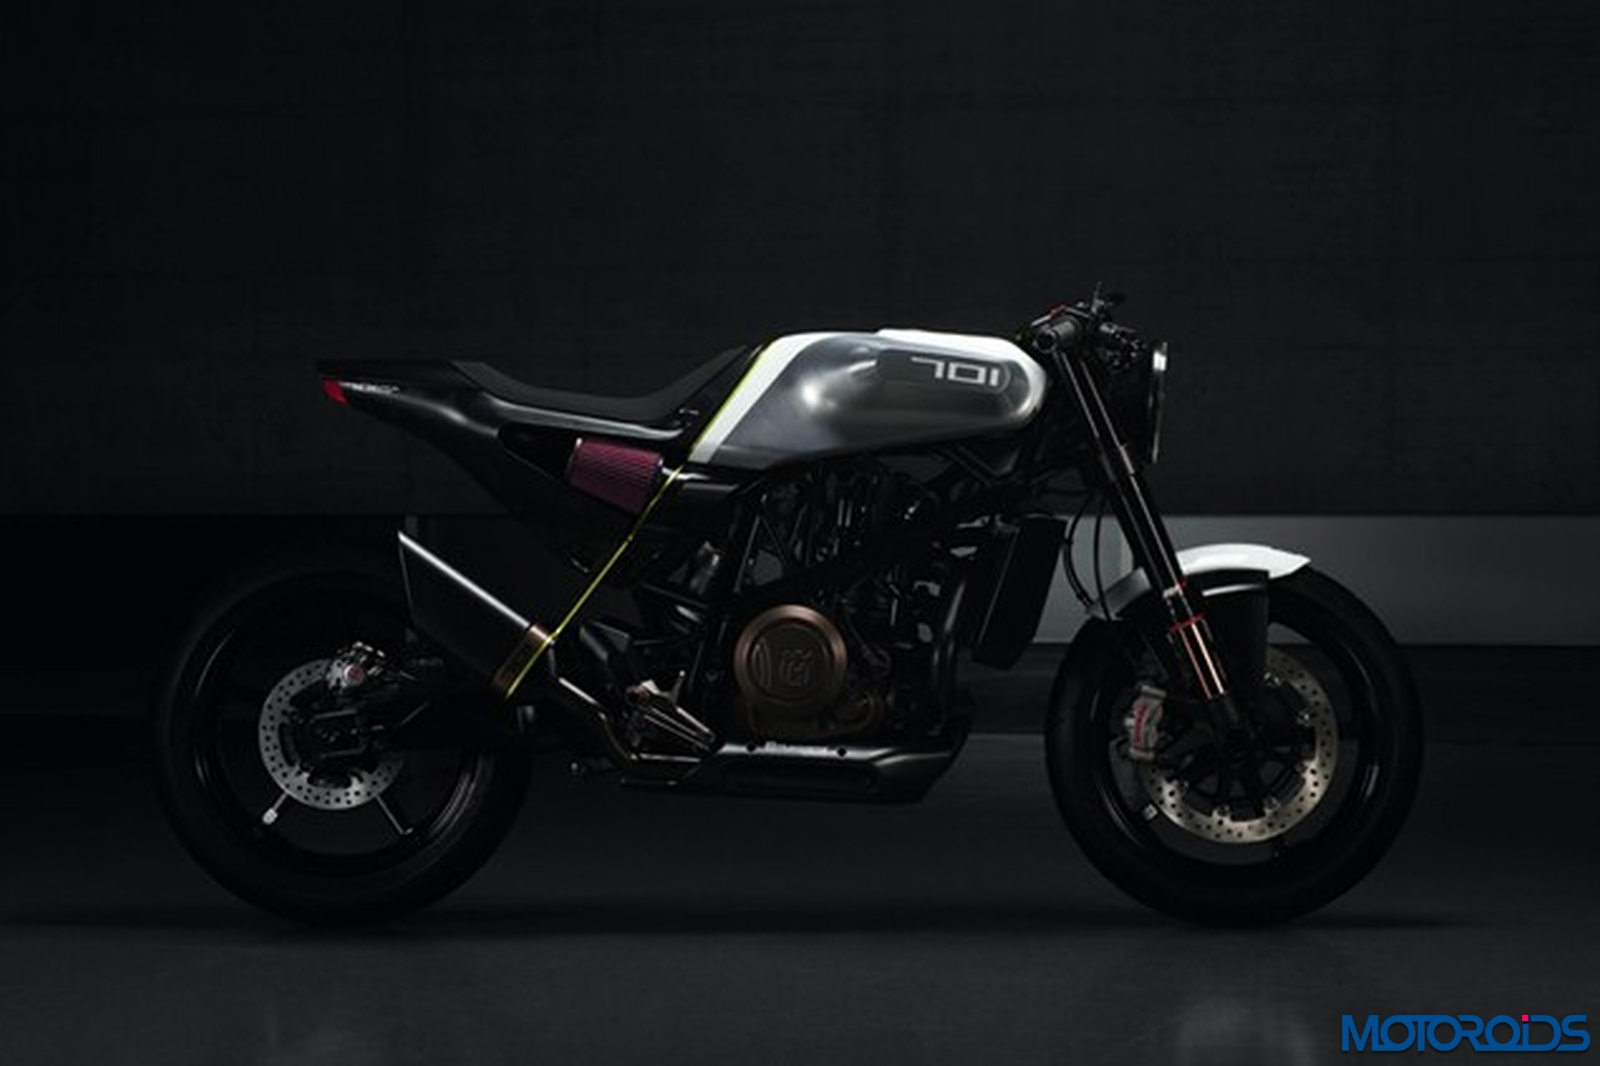 eicma 2015 husqvarna introduces vitpilen 701 concept. Black Bedroom Furniture Sets. Home Design Ideas